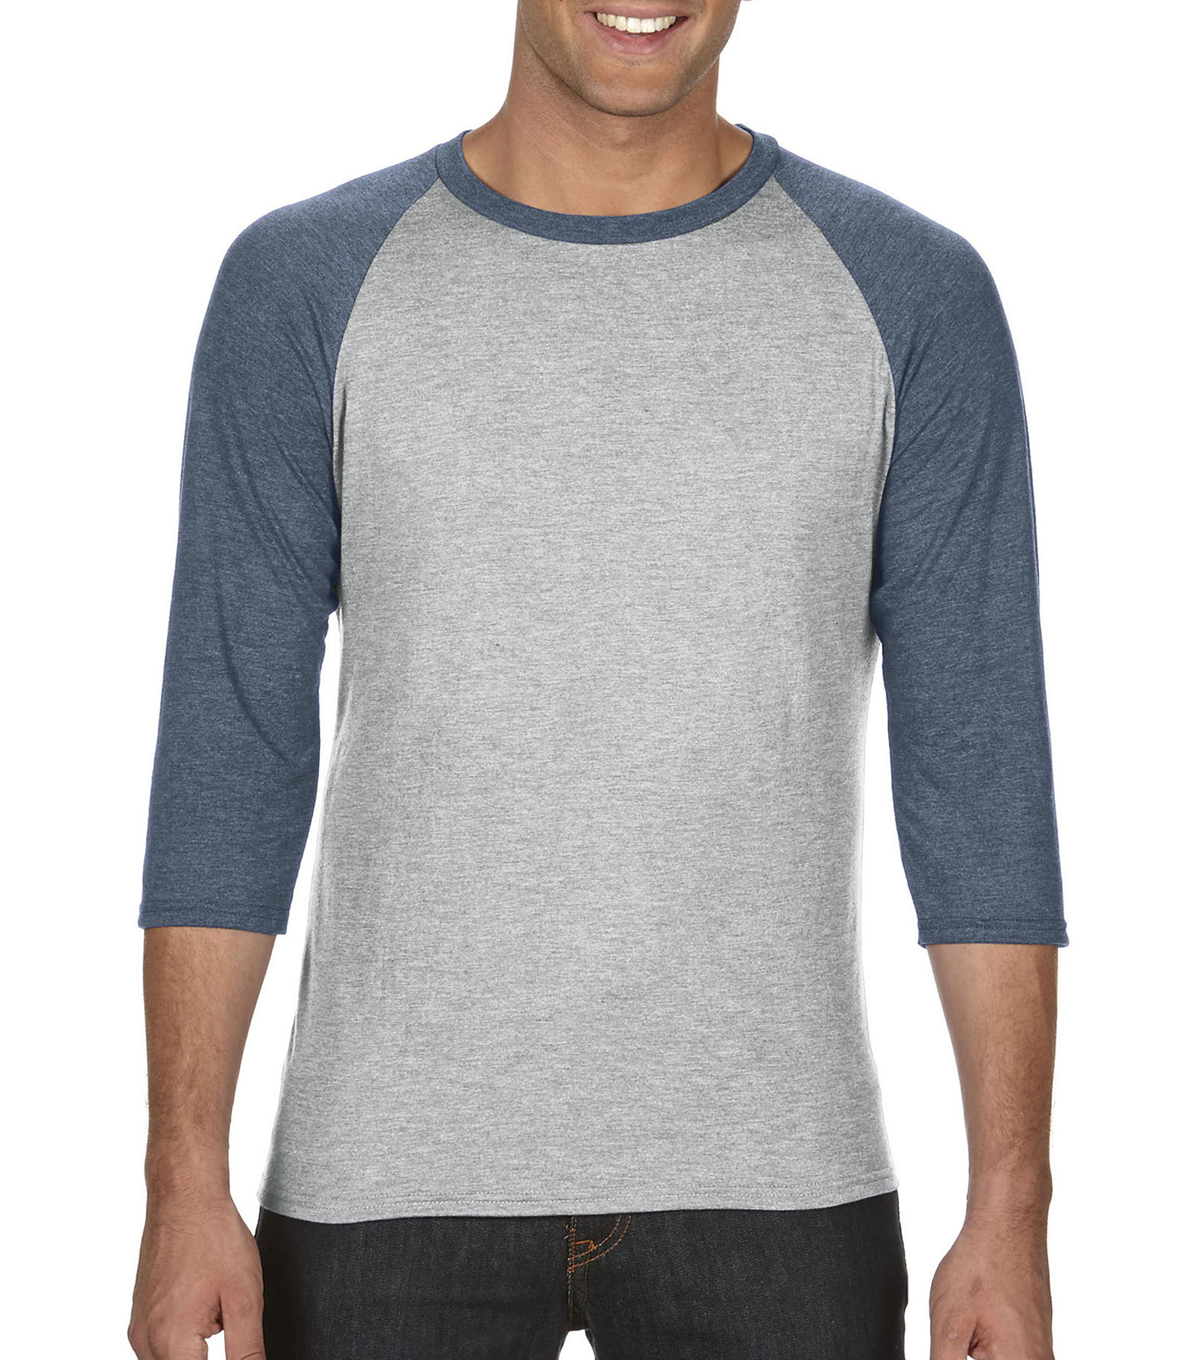 Anvil Extra Large Adult Raglan Shirt, Grey/navy